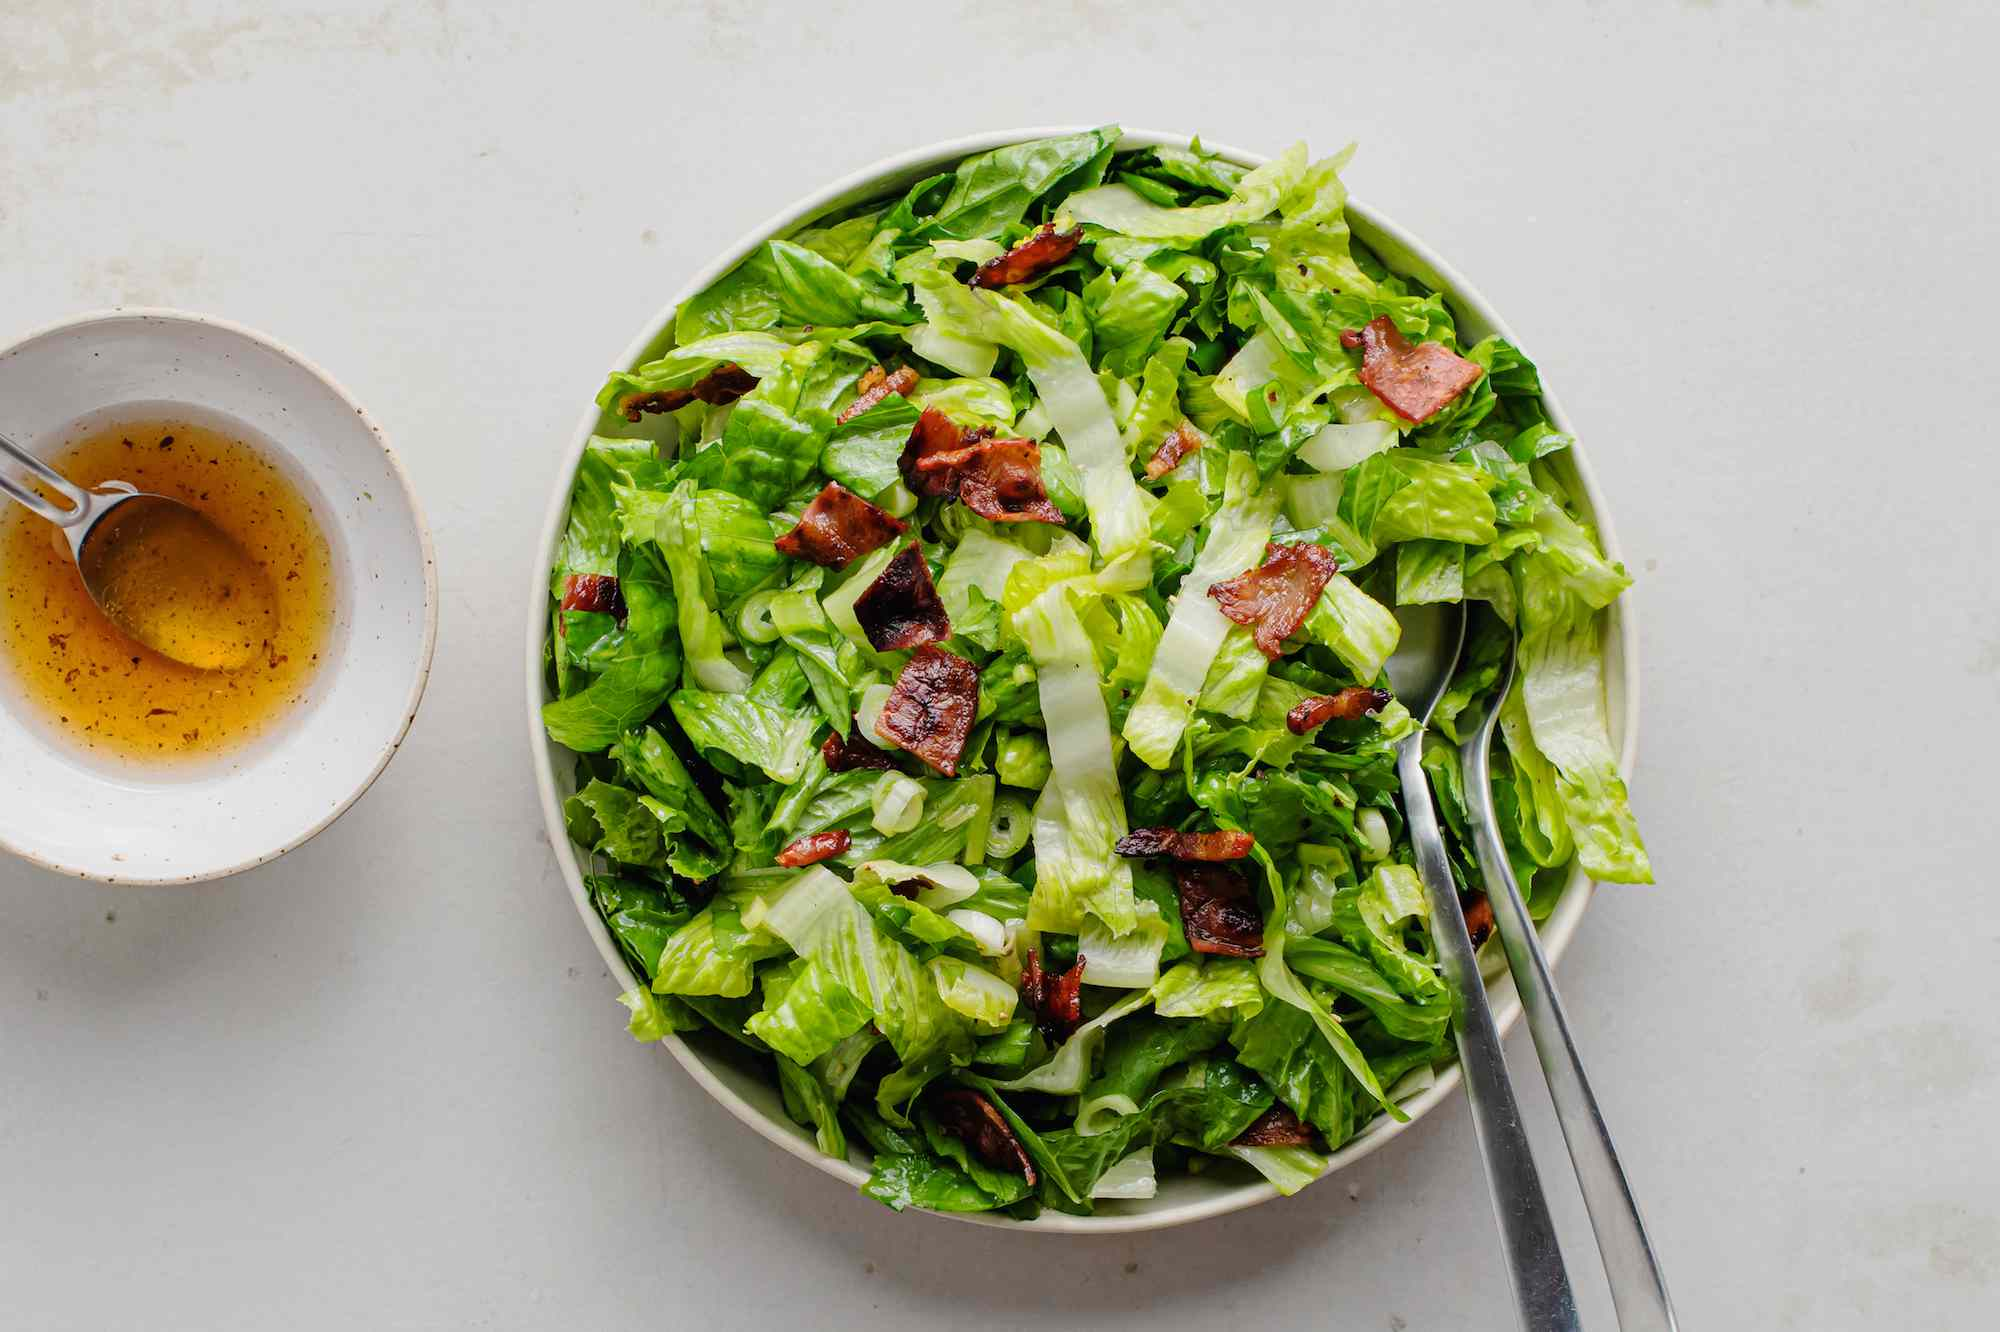 Wilted lettuce salad with bacon